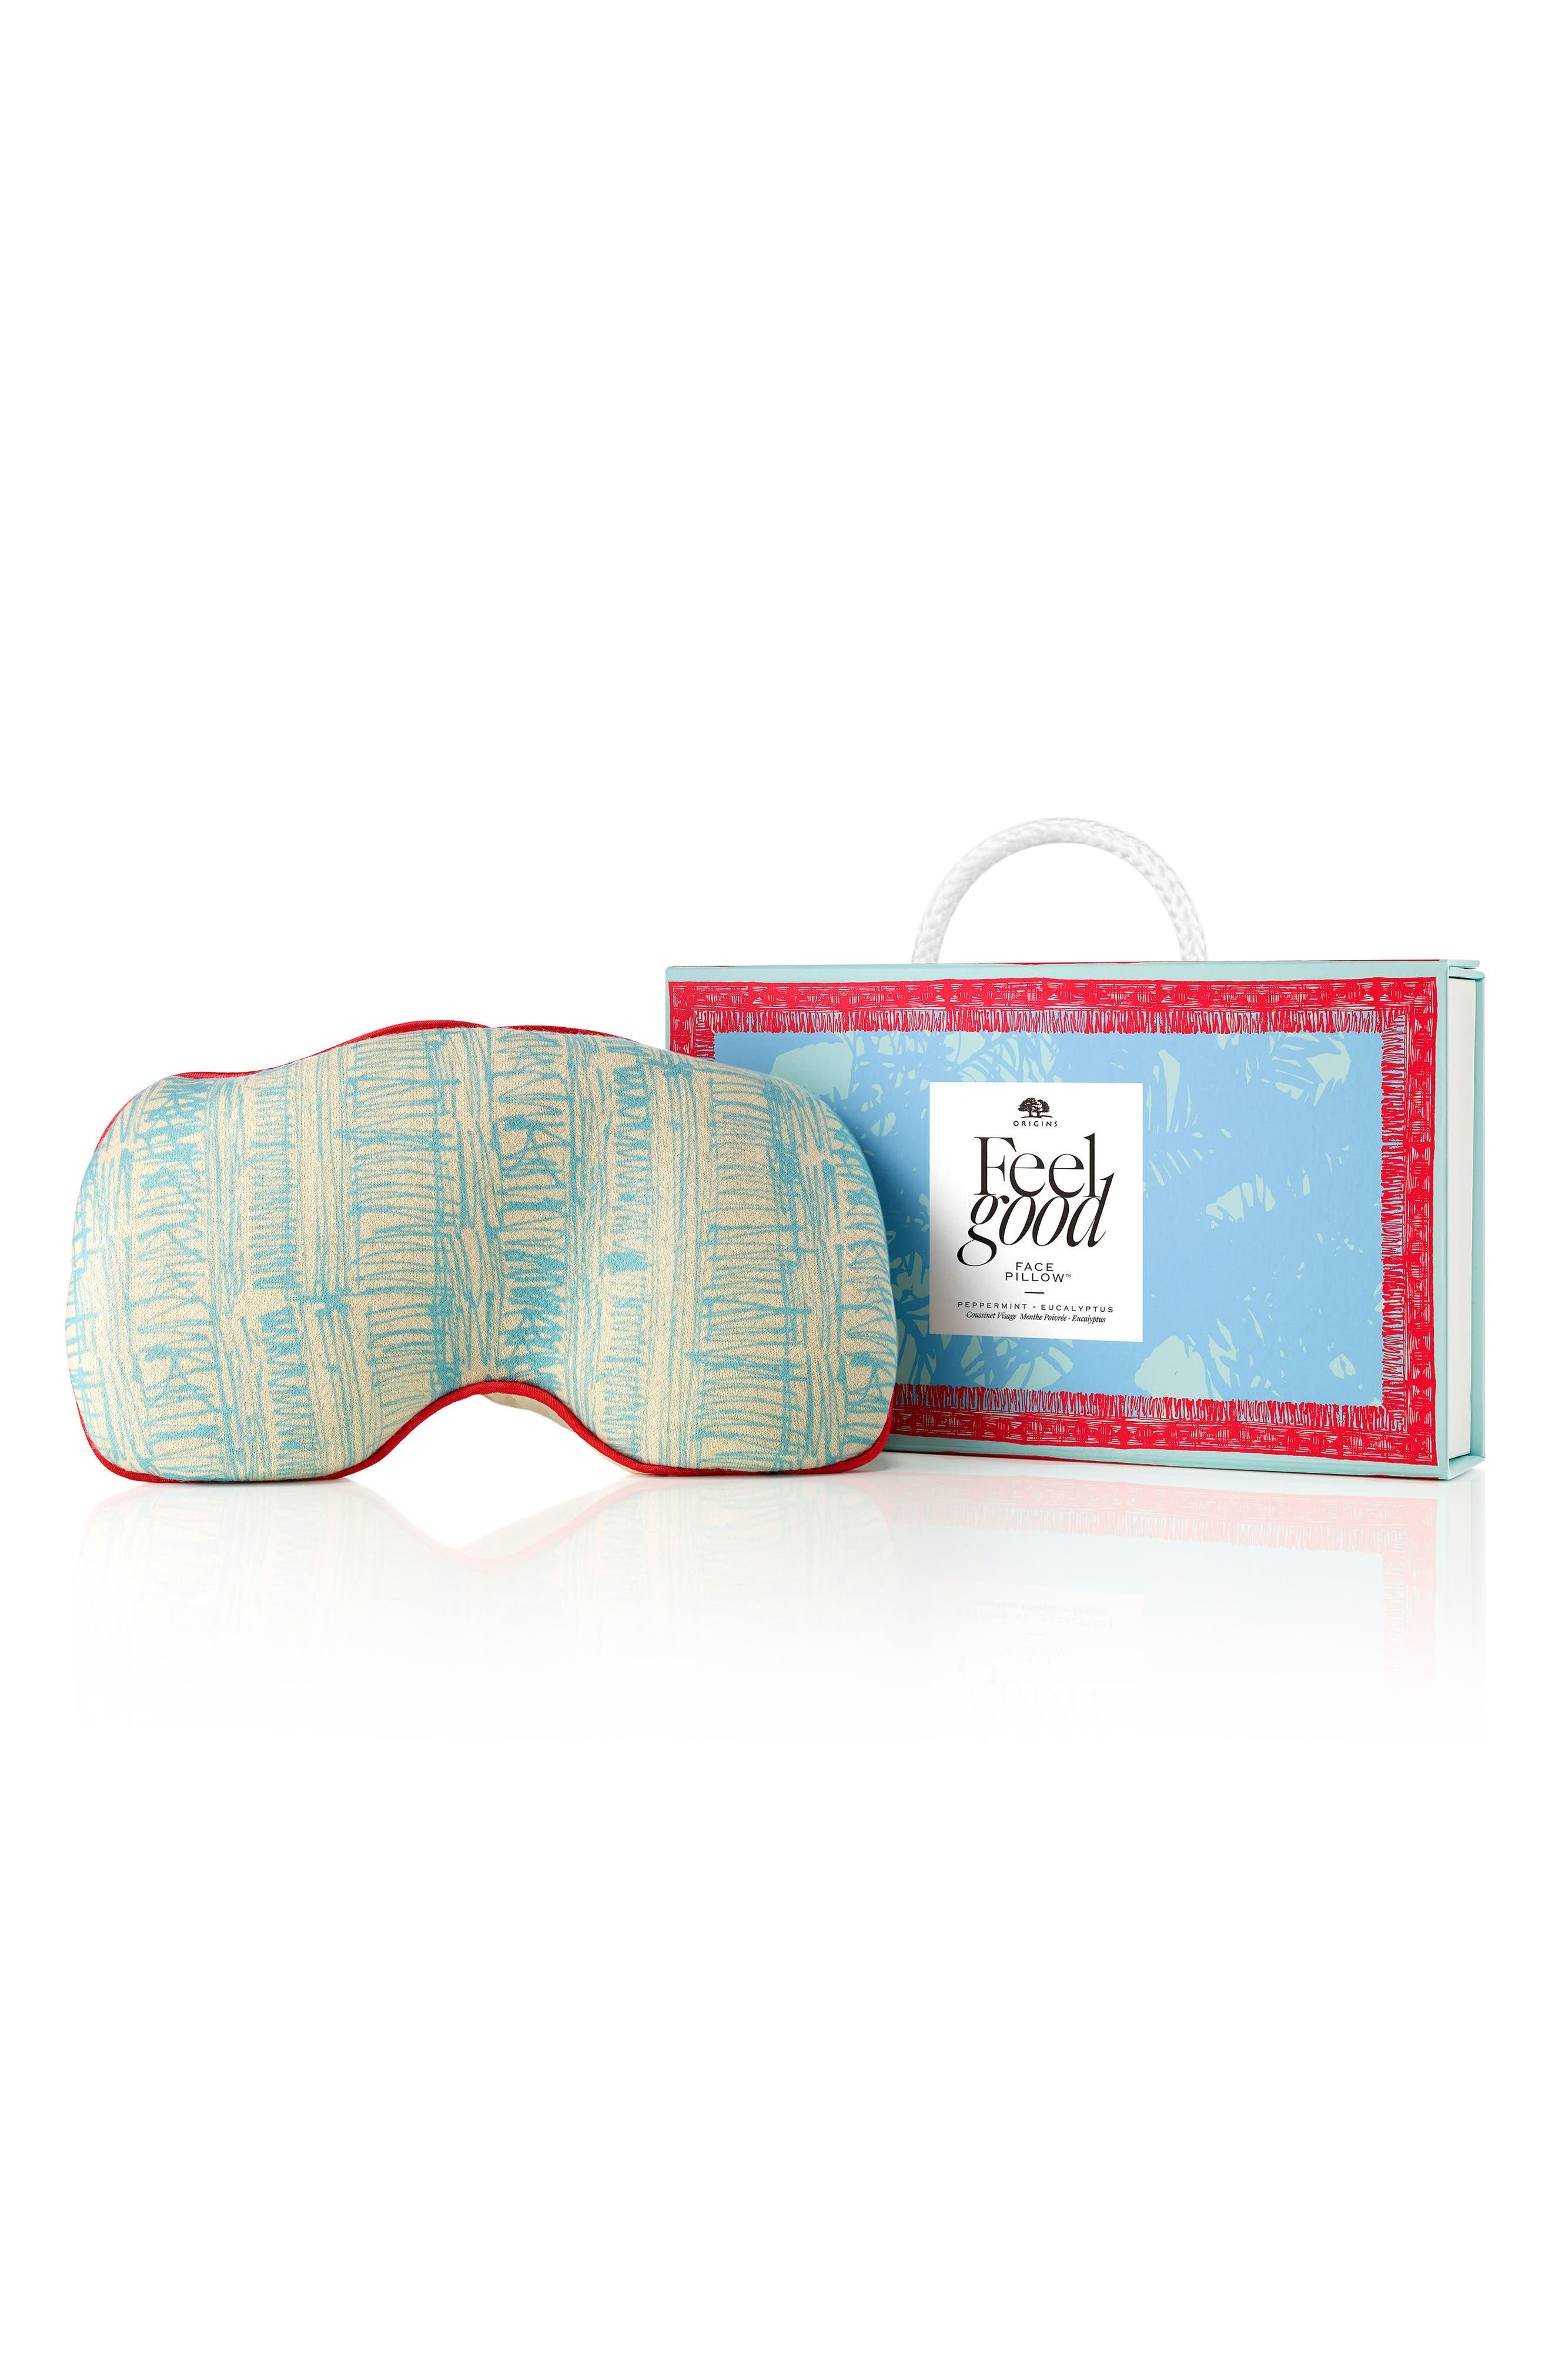 Main Image - Origins Feel Good Face Pillow™ with Peppermint & Eucalyptus (Limited Edition)